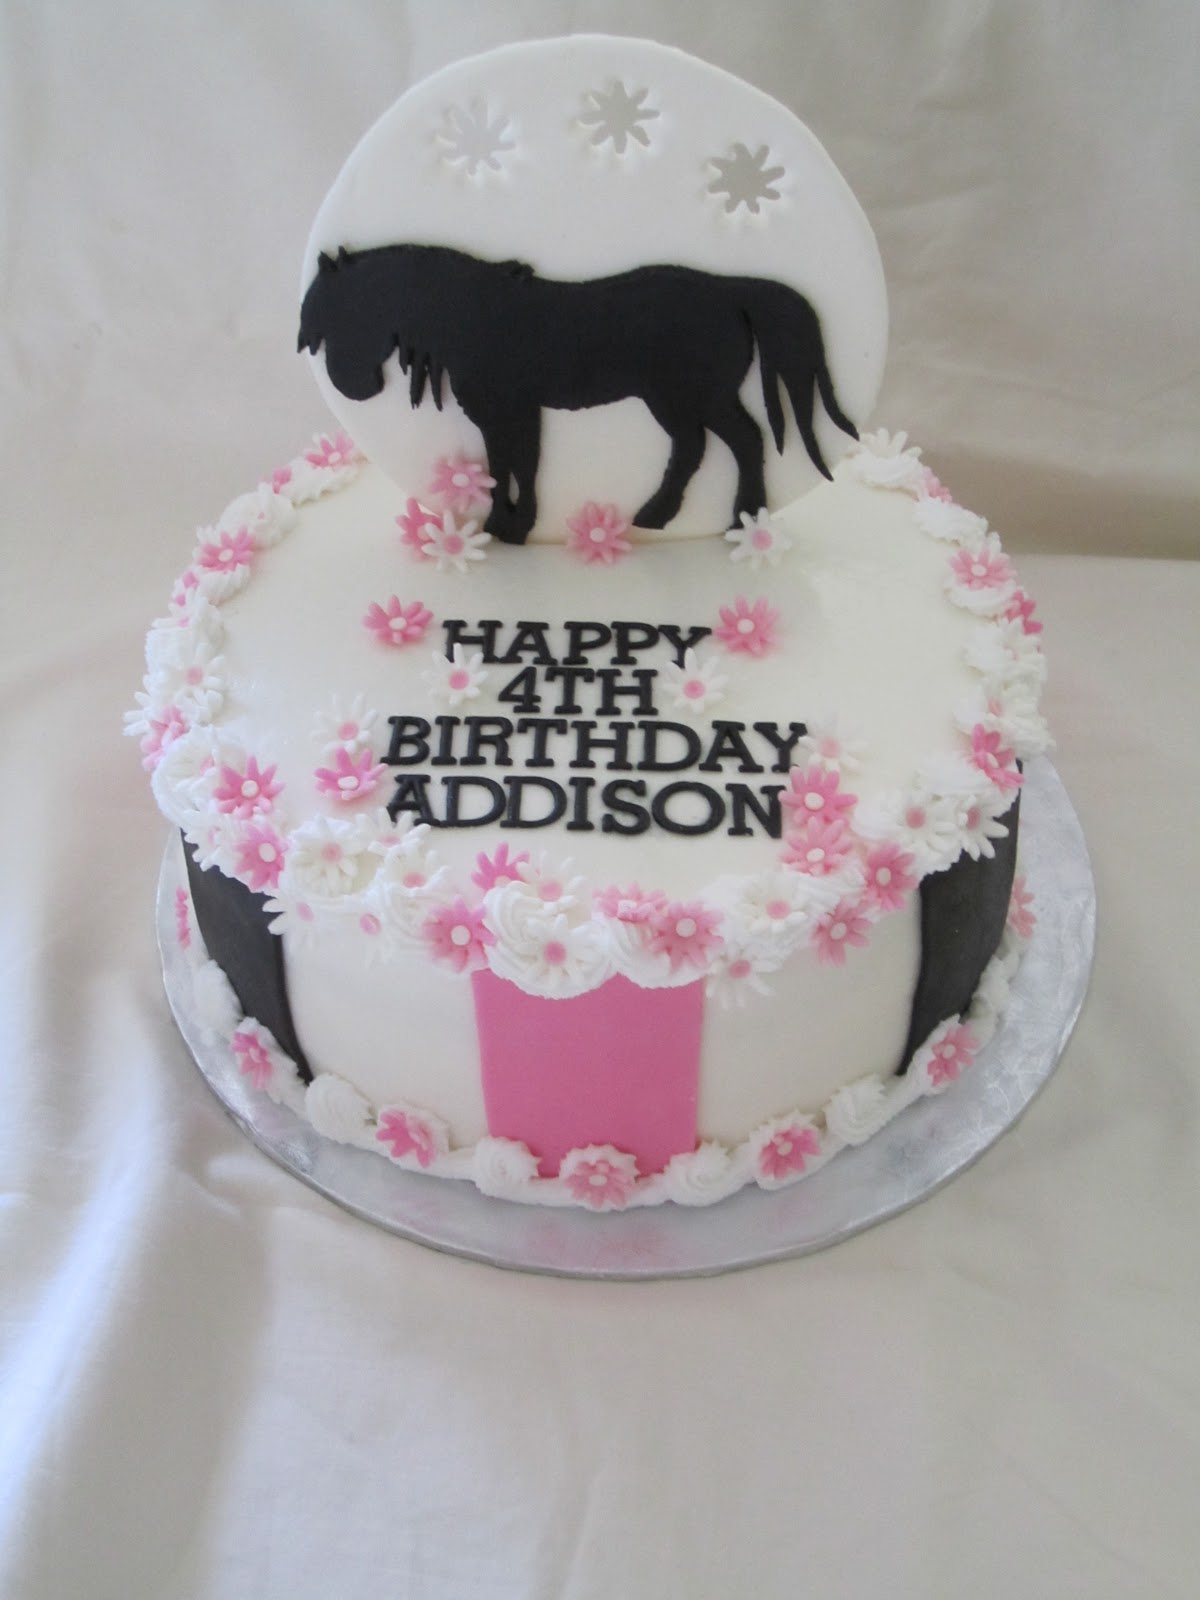 Cakesor Something Like That Pink And Black Horse Cake